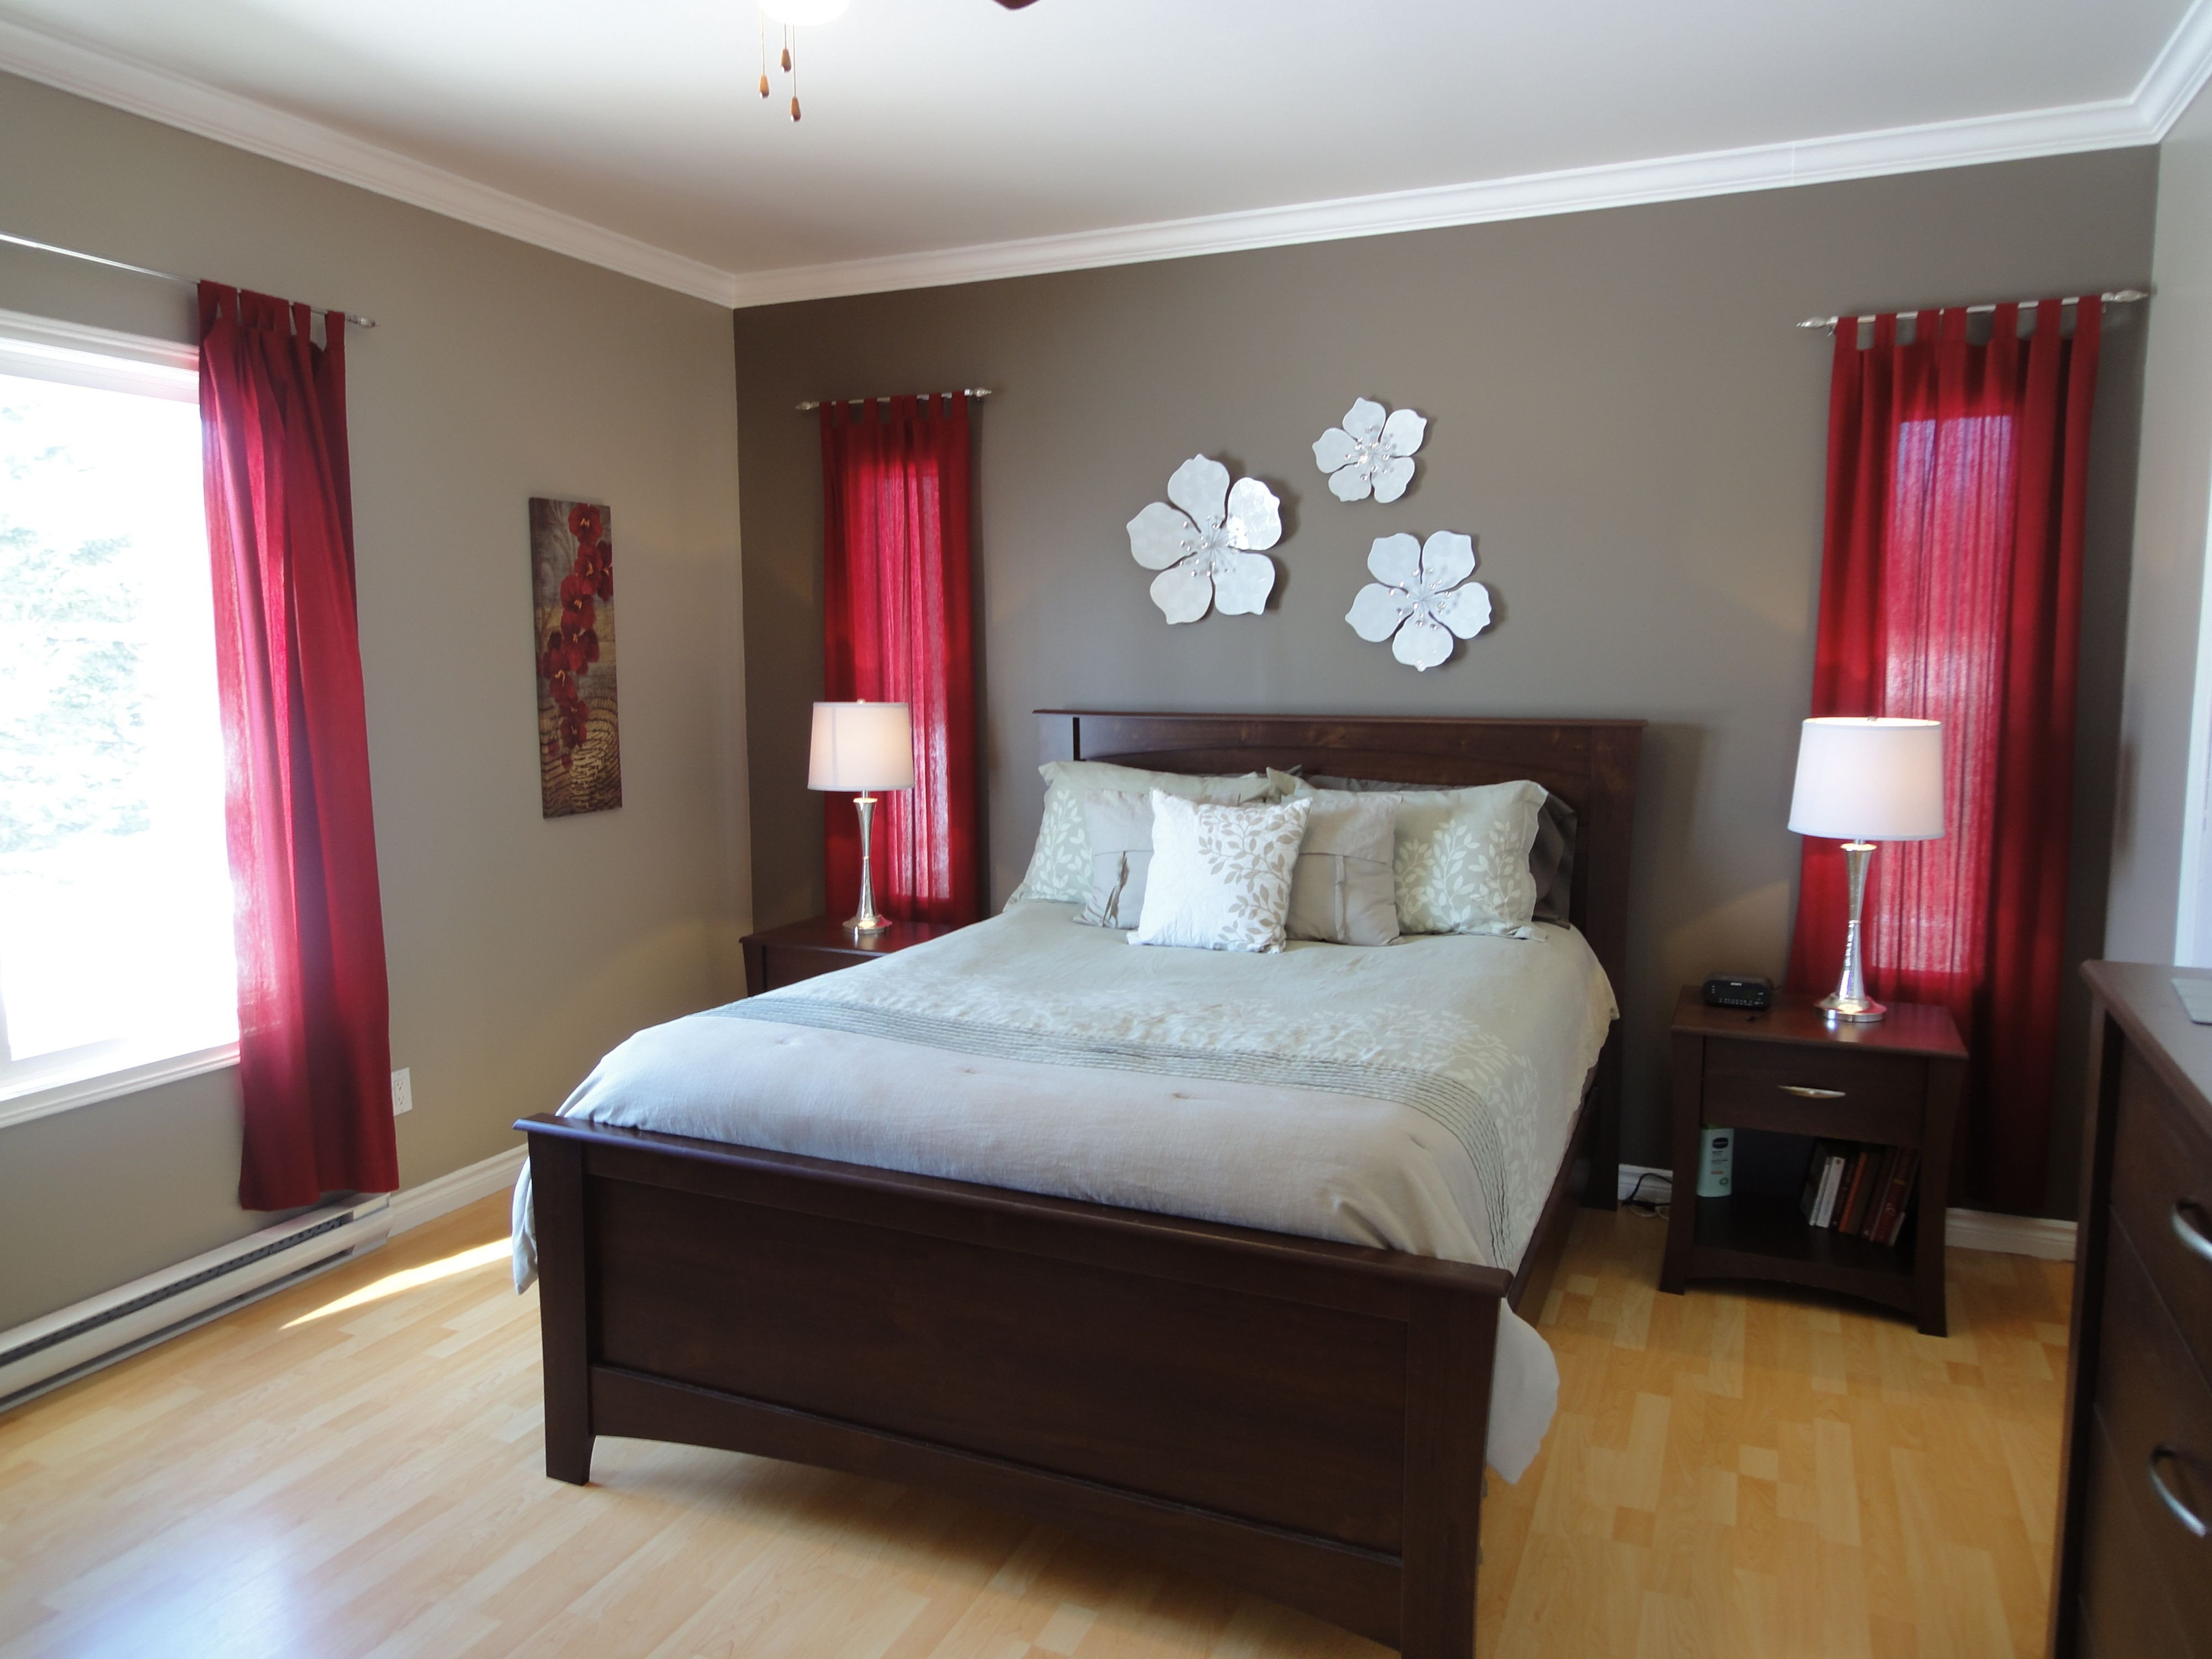 Red and Gray Bedroom Fresh I Just Decorated Our Guest Bedroom with Red Accents I Would